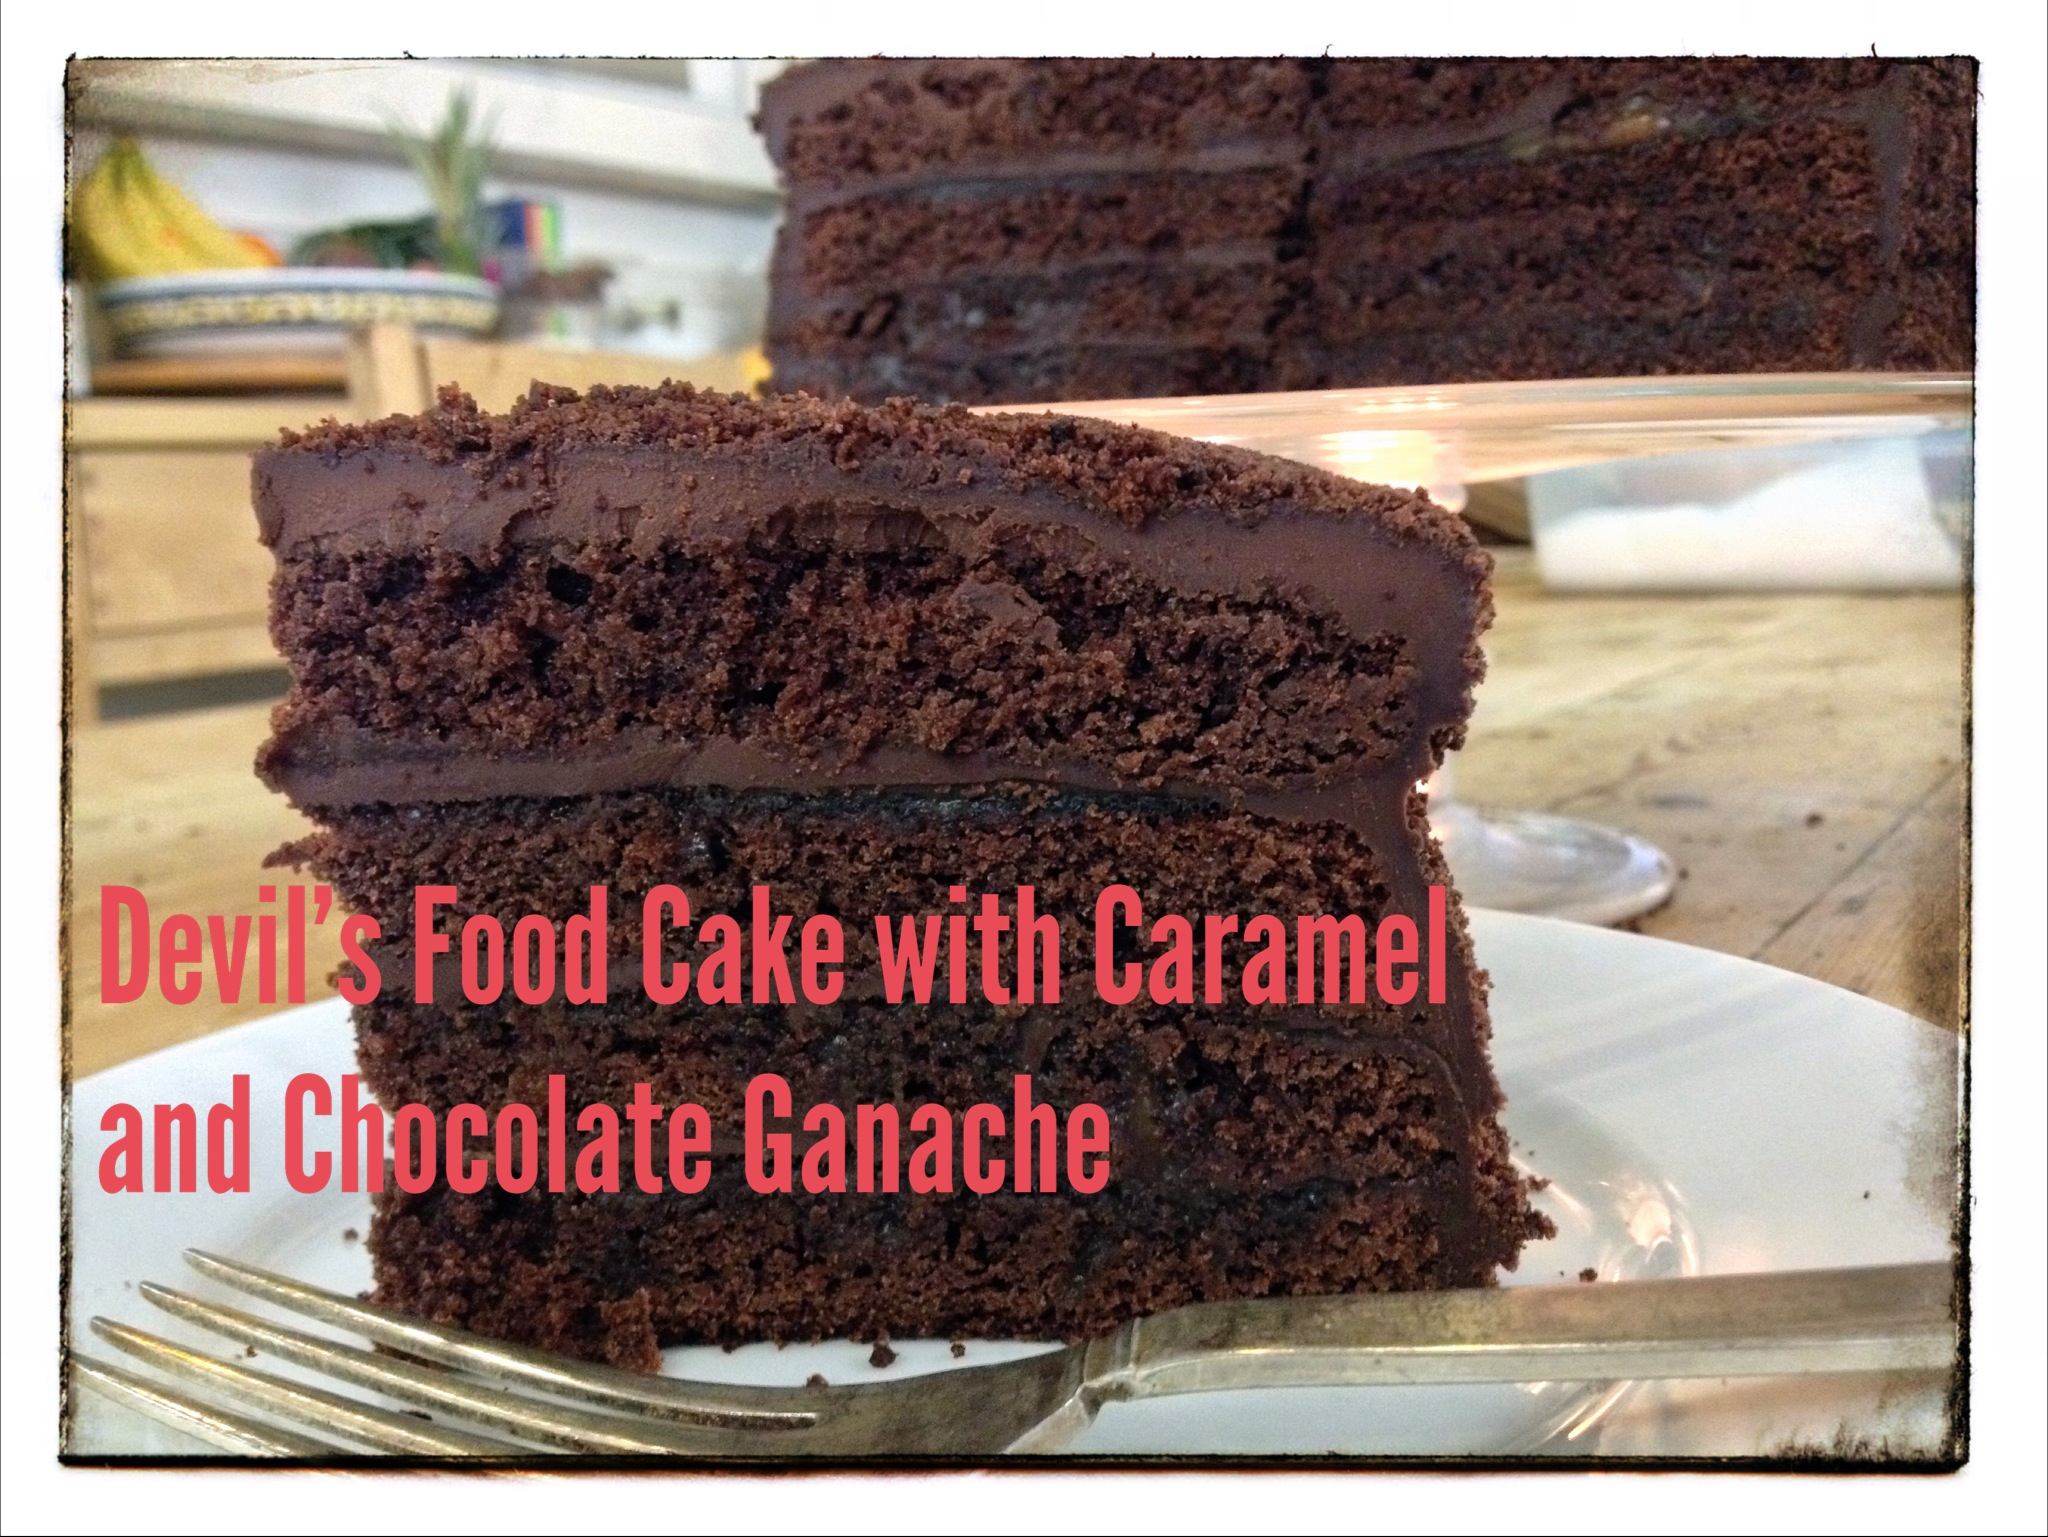 Devil's Food Layer Cake with Caramel and Chocolate Ganache